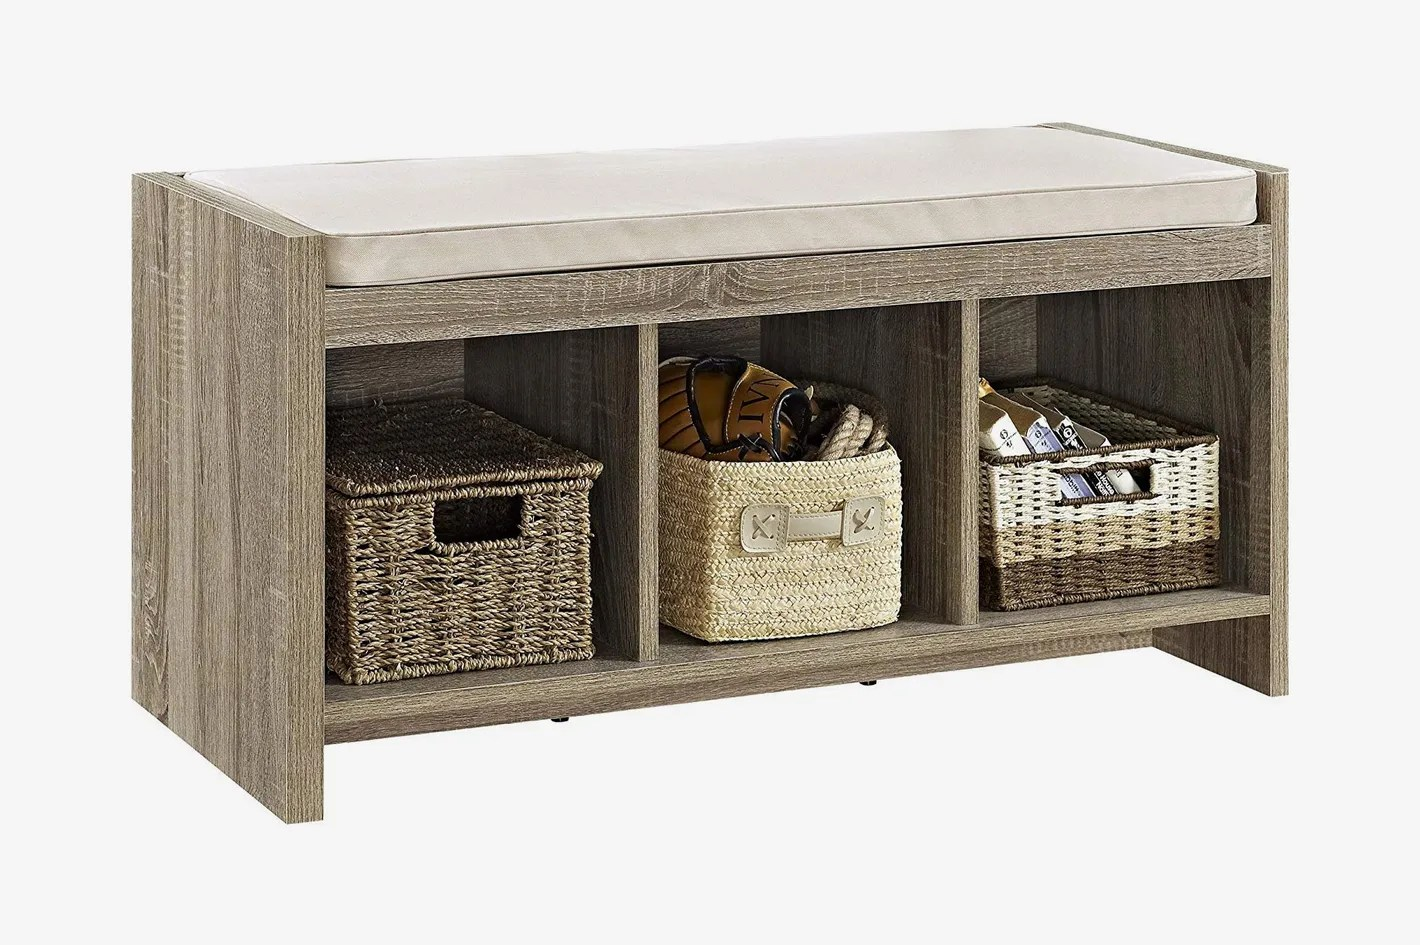 Seating With Storage Underneath Ameriwood Home Penelope Entryway Storage Bench With Cushion